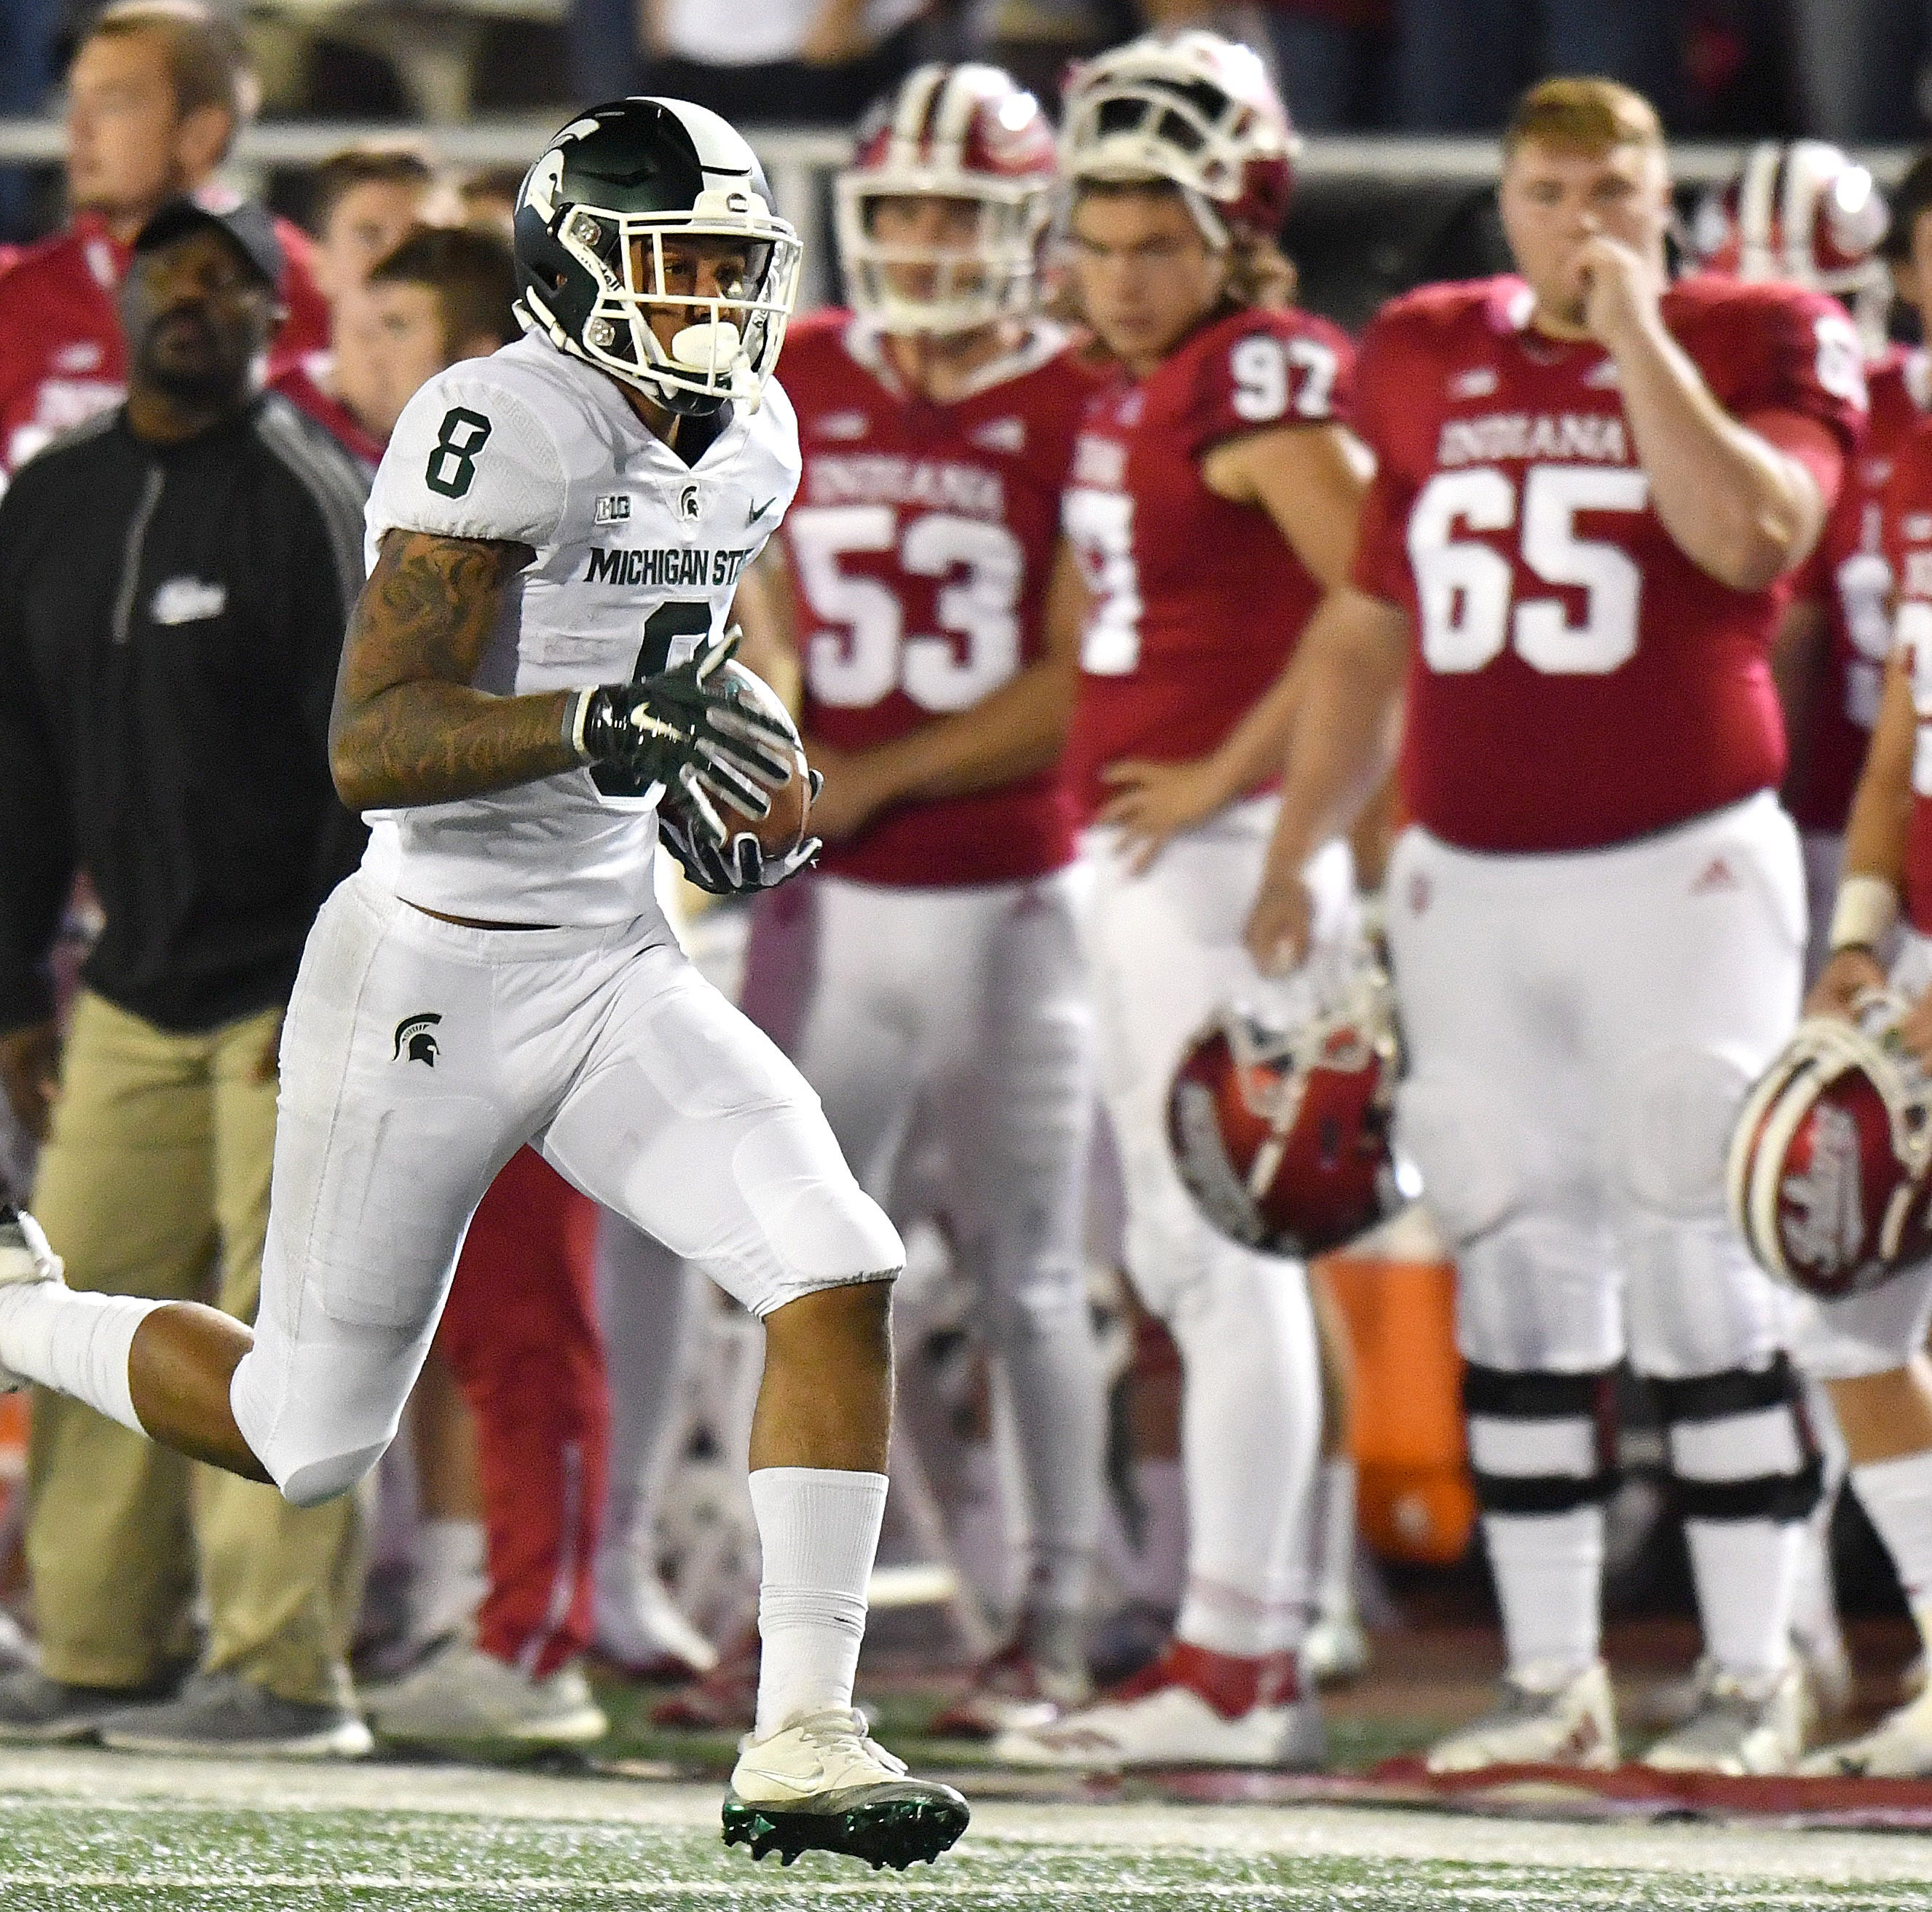 Michigan State's Nailor takes fast track to end zone